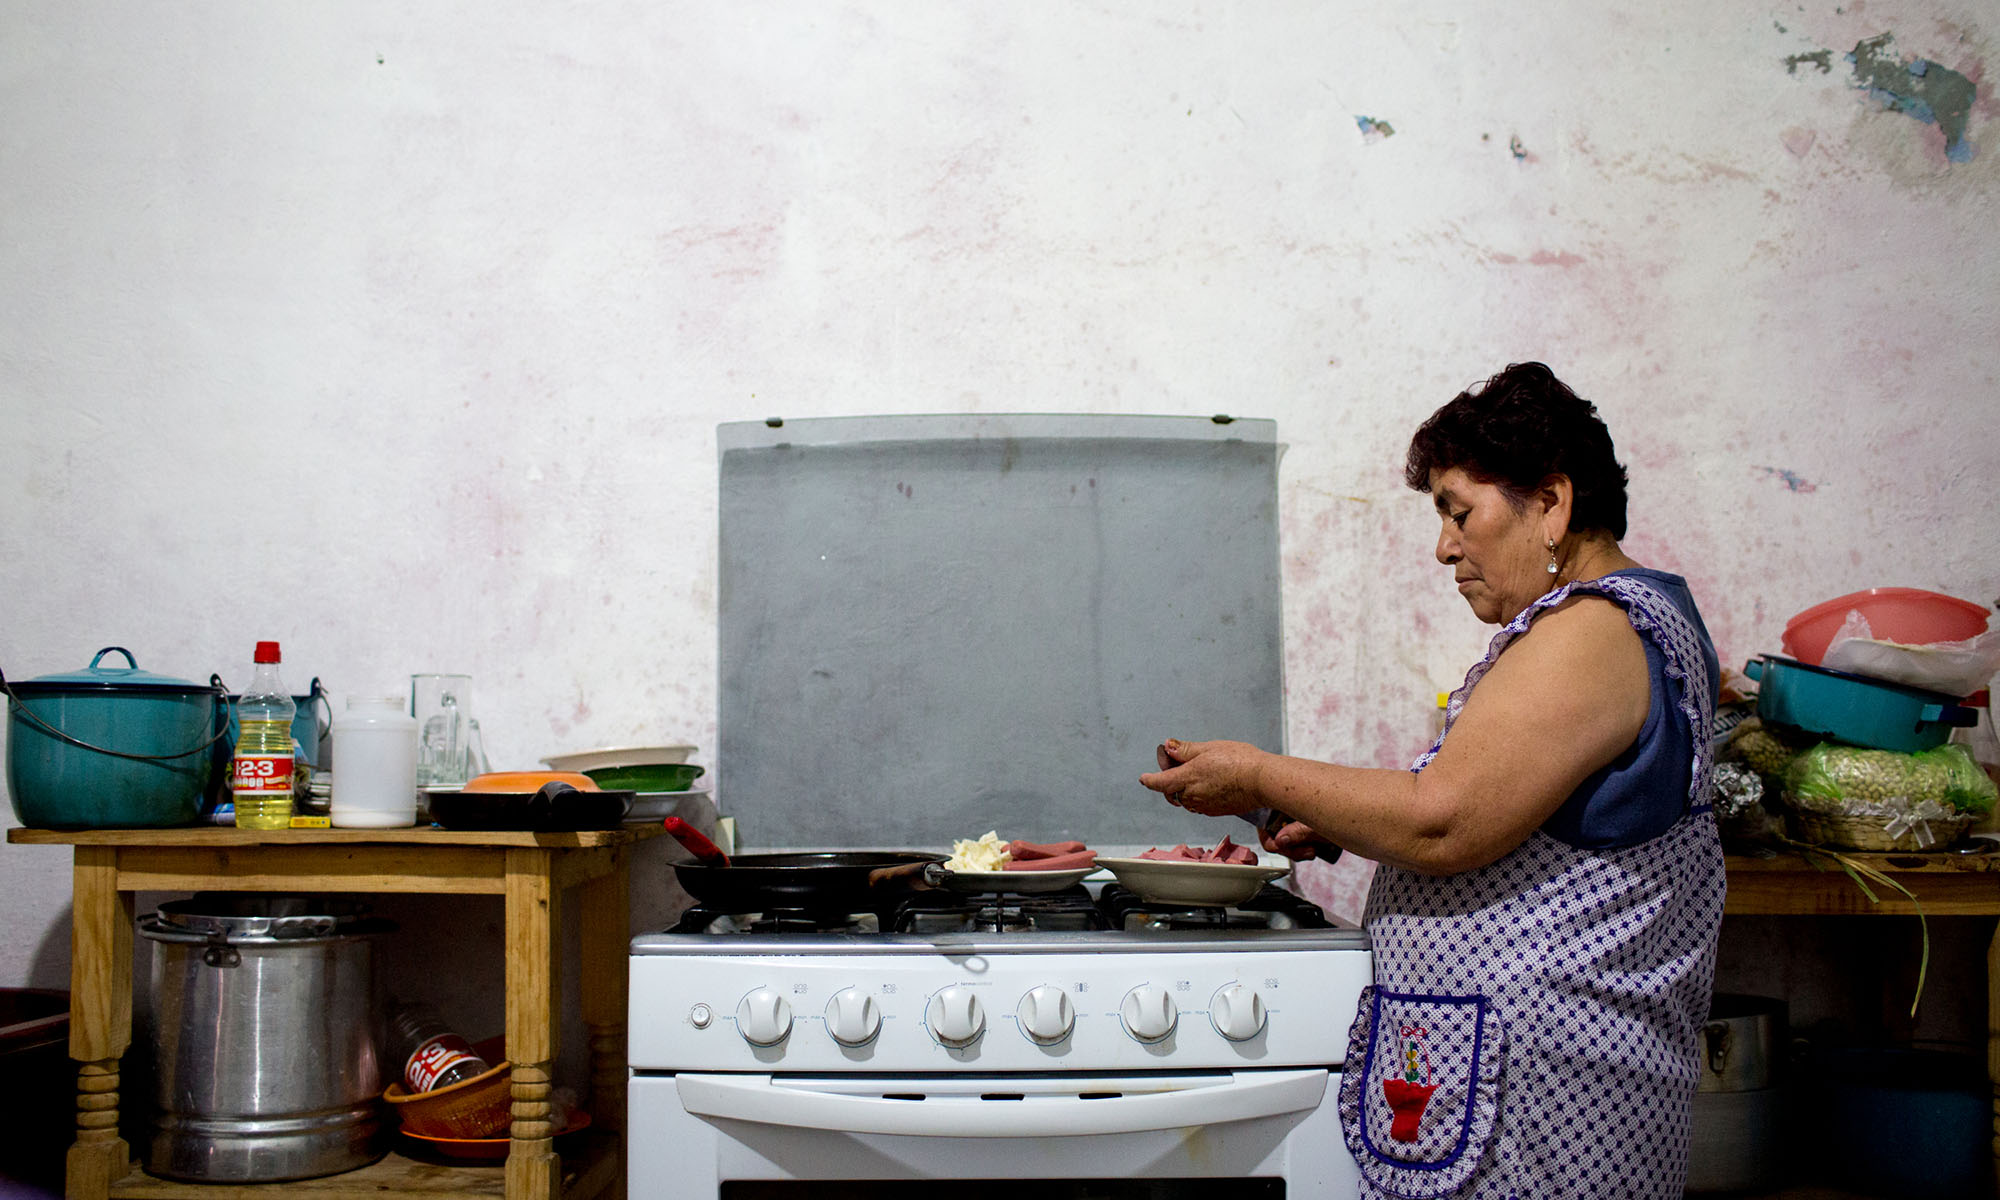 """Rodriguez makes lunch for her family in the town of Caleras, Mexico. Her son has been in the United States for over 20 years, in San Antonio. He is an undocumented worker and she worries for his safety after seeing news stories and hearing from people who have been deported. She doesn't want him to be separated from his daughters. He first left at age 16, came back home then left for good two years later. """"He always had that idea that he should help us. We work to survive. That's why he left. He said, 'I'm leaving so I can help you,'"""" Rodriguez said. (Photo by Courtney Pedroza/Cronkite Borderlands Initiative)"""